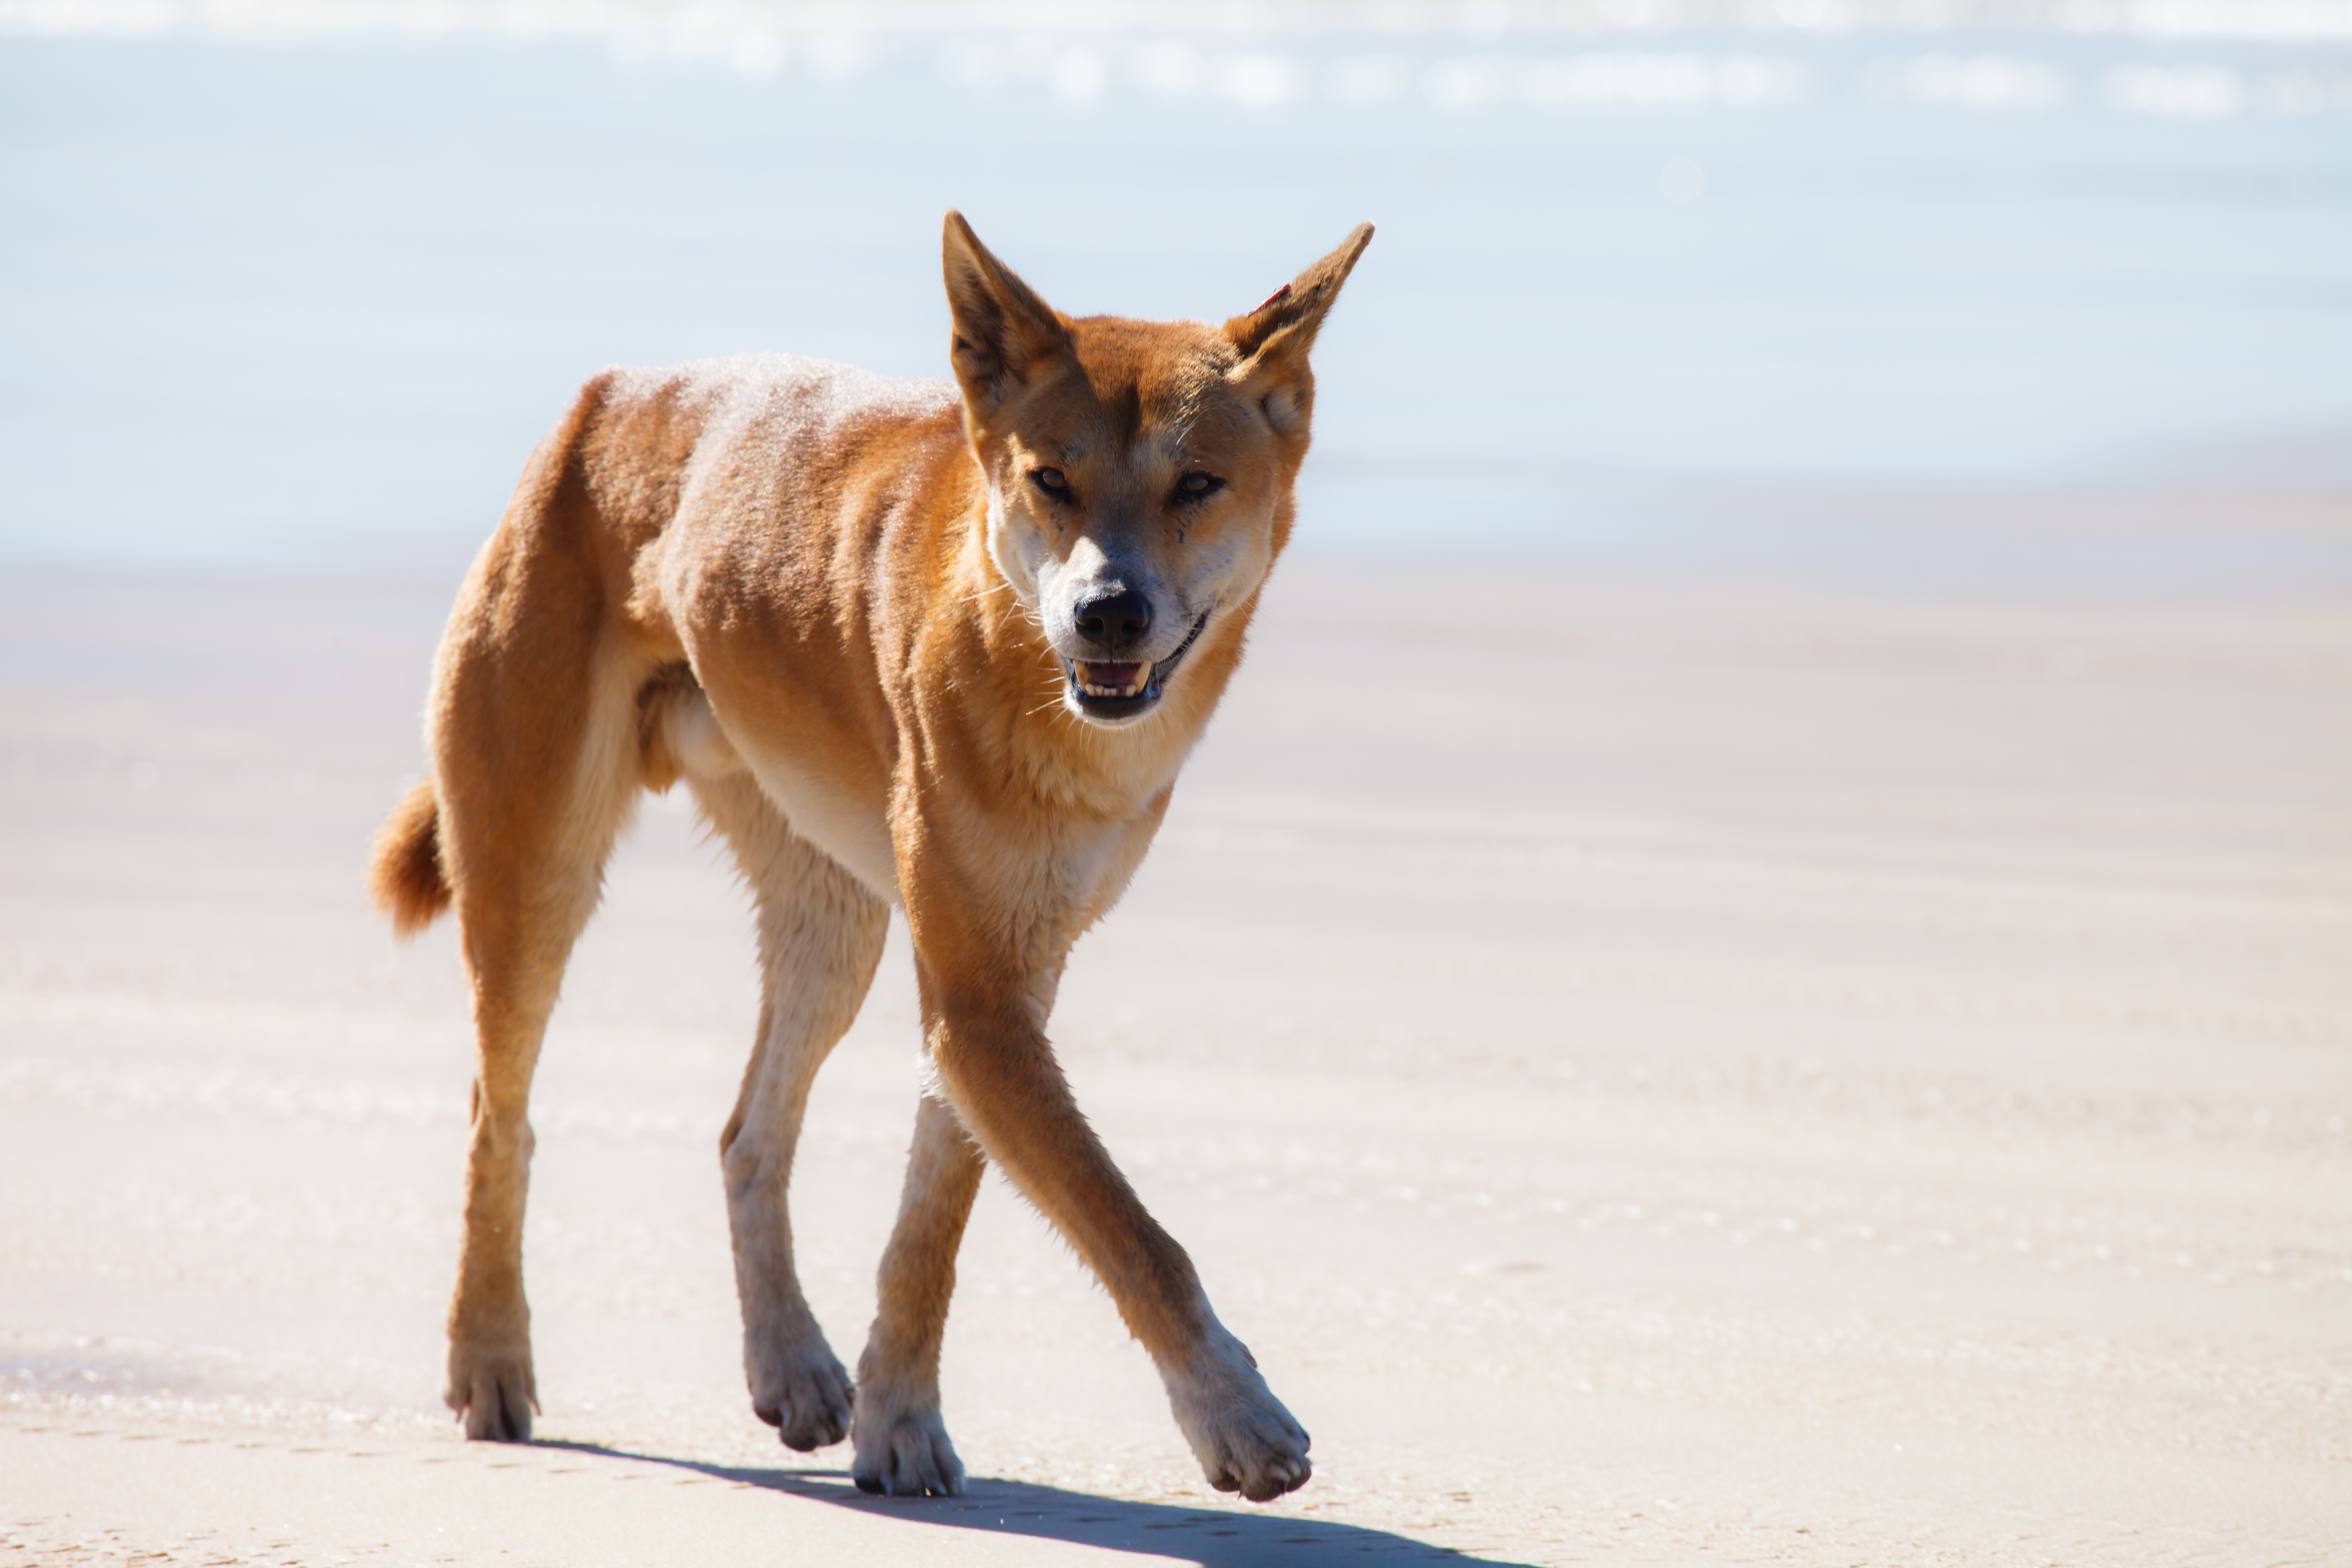 The widespread removal of Australian dingoes has reduced the natural control of introduced species such as foxes and cats. This, in turn, has negatively impacted populations of indigenous small mammals.